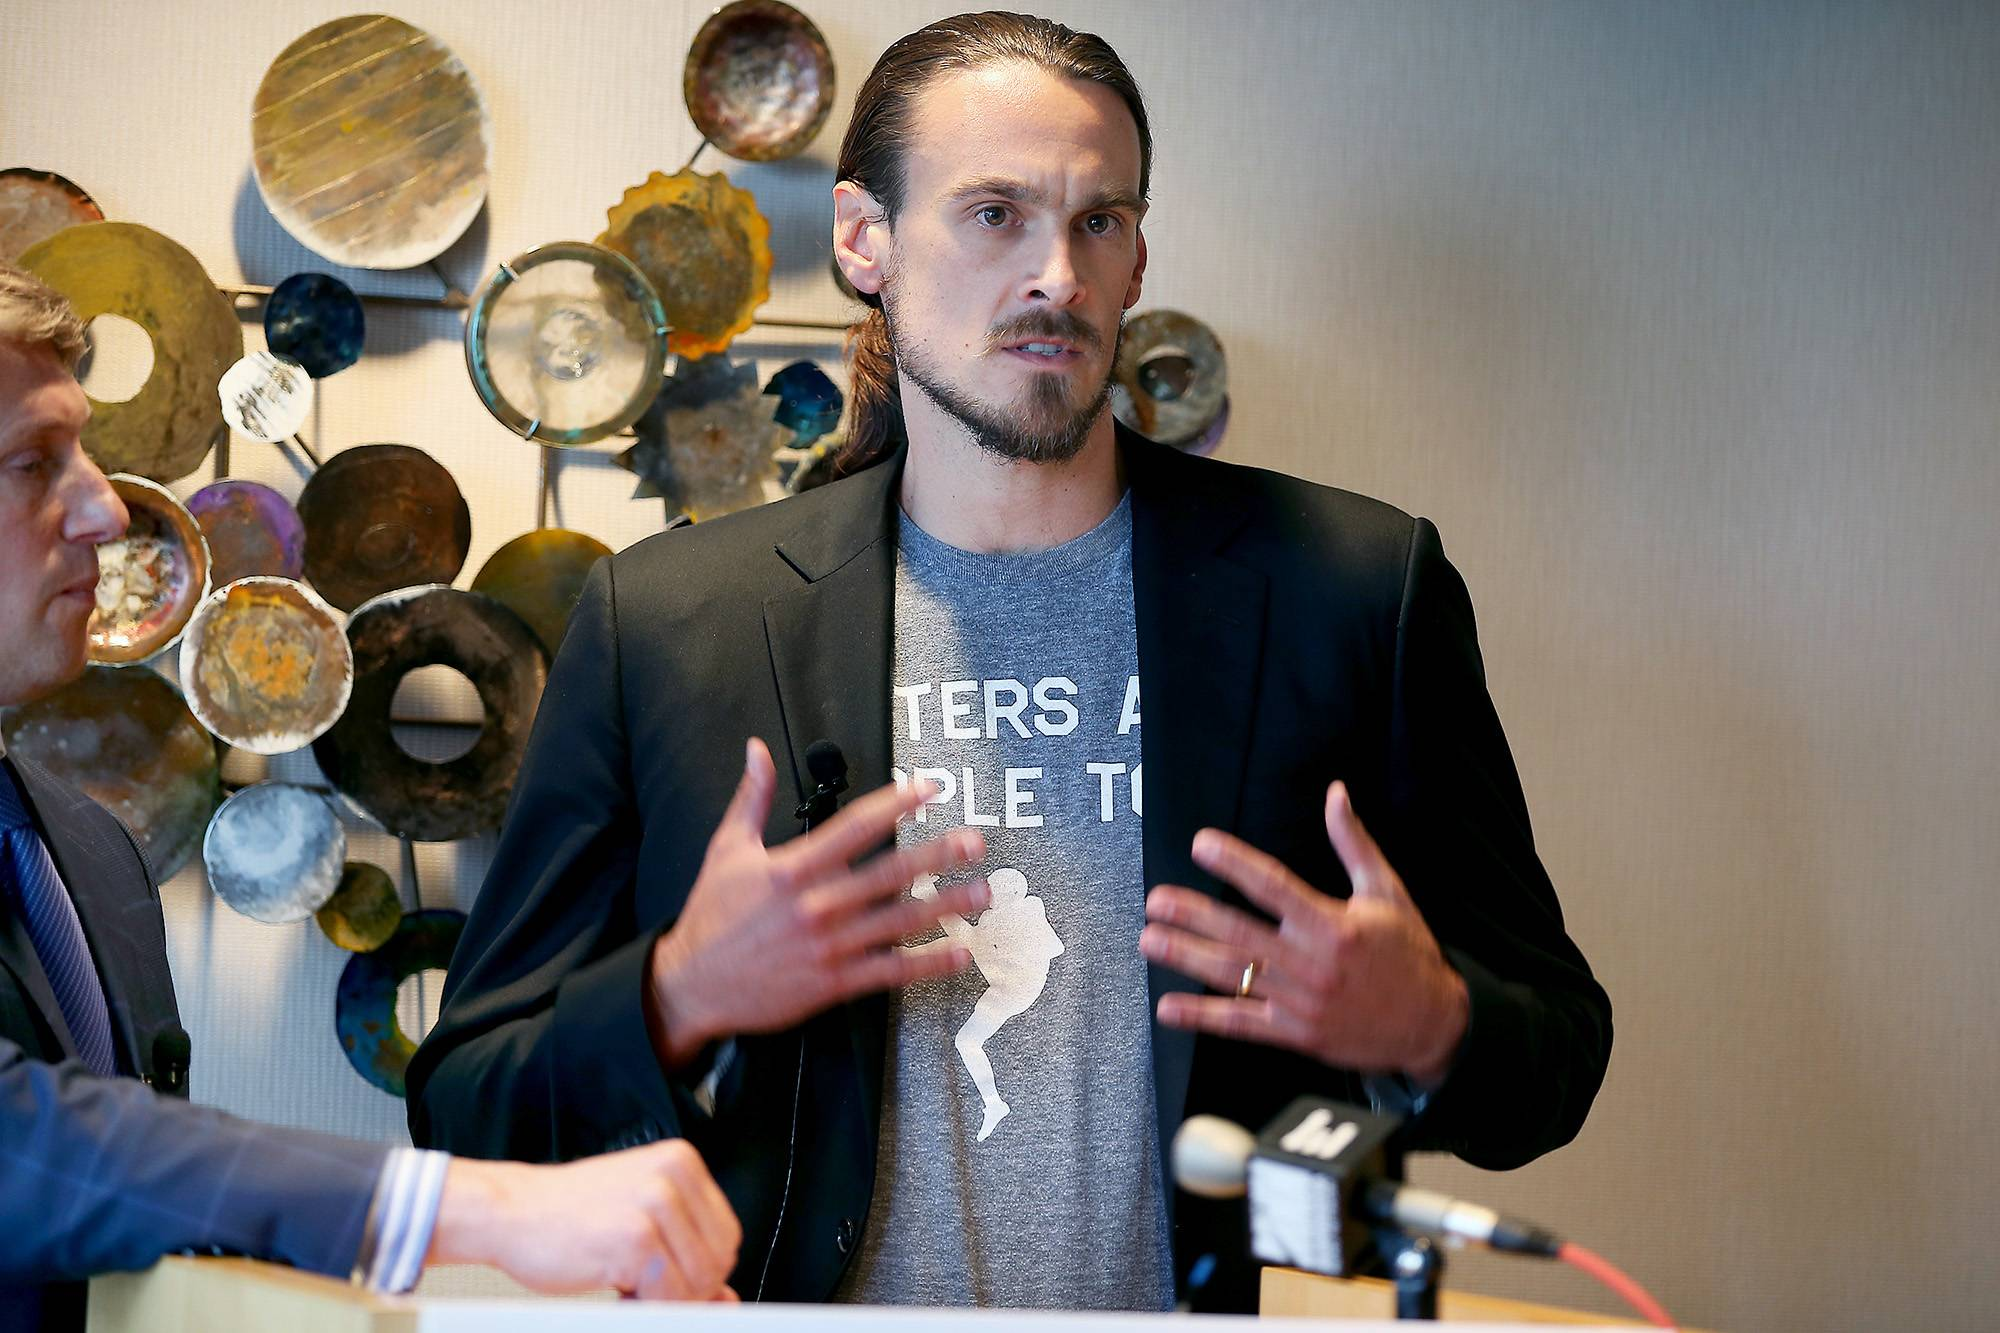 Former Minnesota Vikings punter Chris Kluwe, right, says he's reached a settlement with the team to avert a threatened lawsuit over his release. Kluwe had accused the Vikings of cutting him over his activism on gay rights issues.